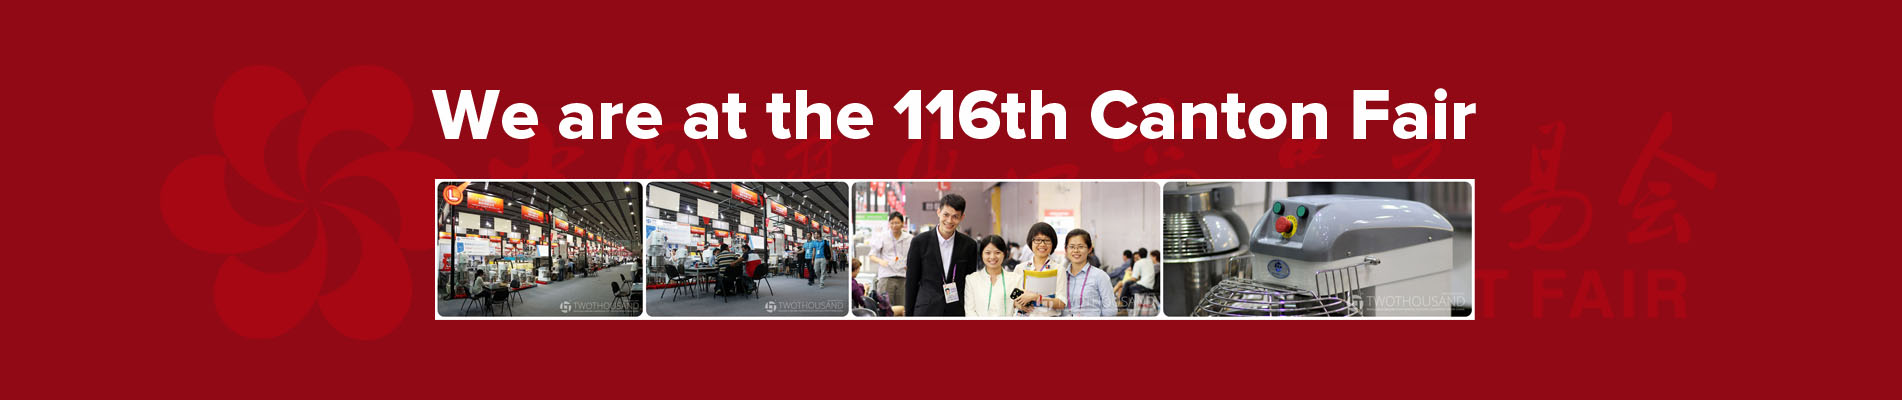 We are in the Canton Fair 116th